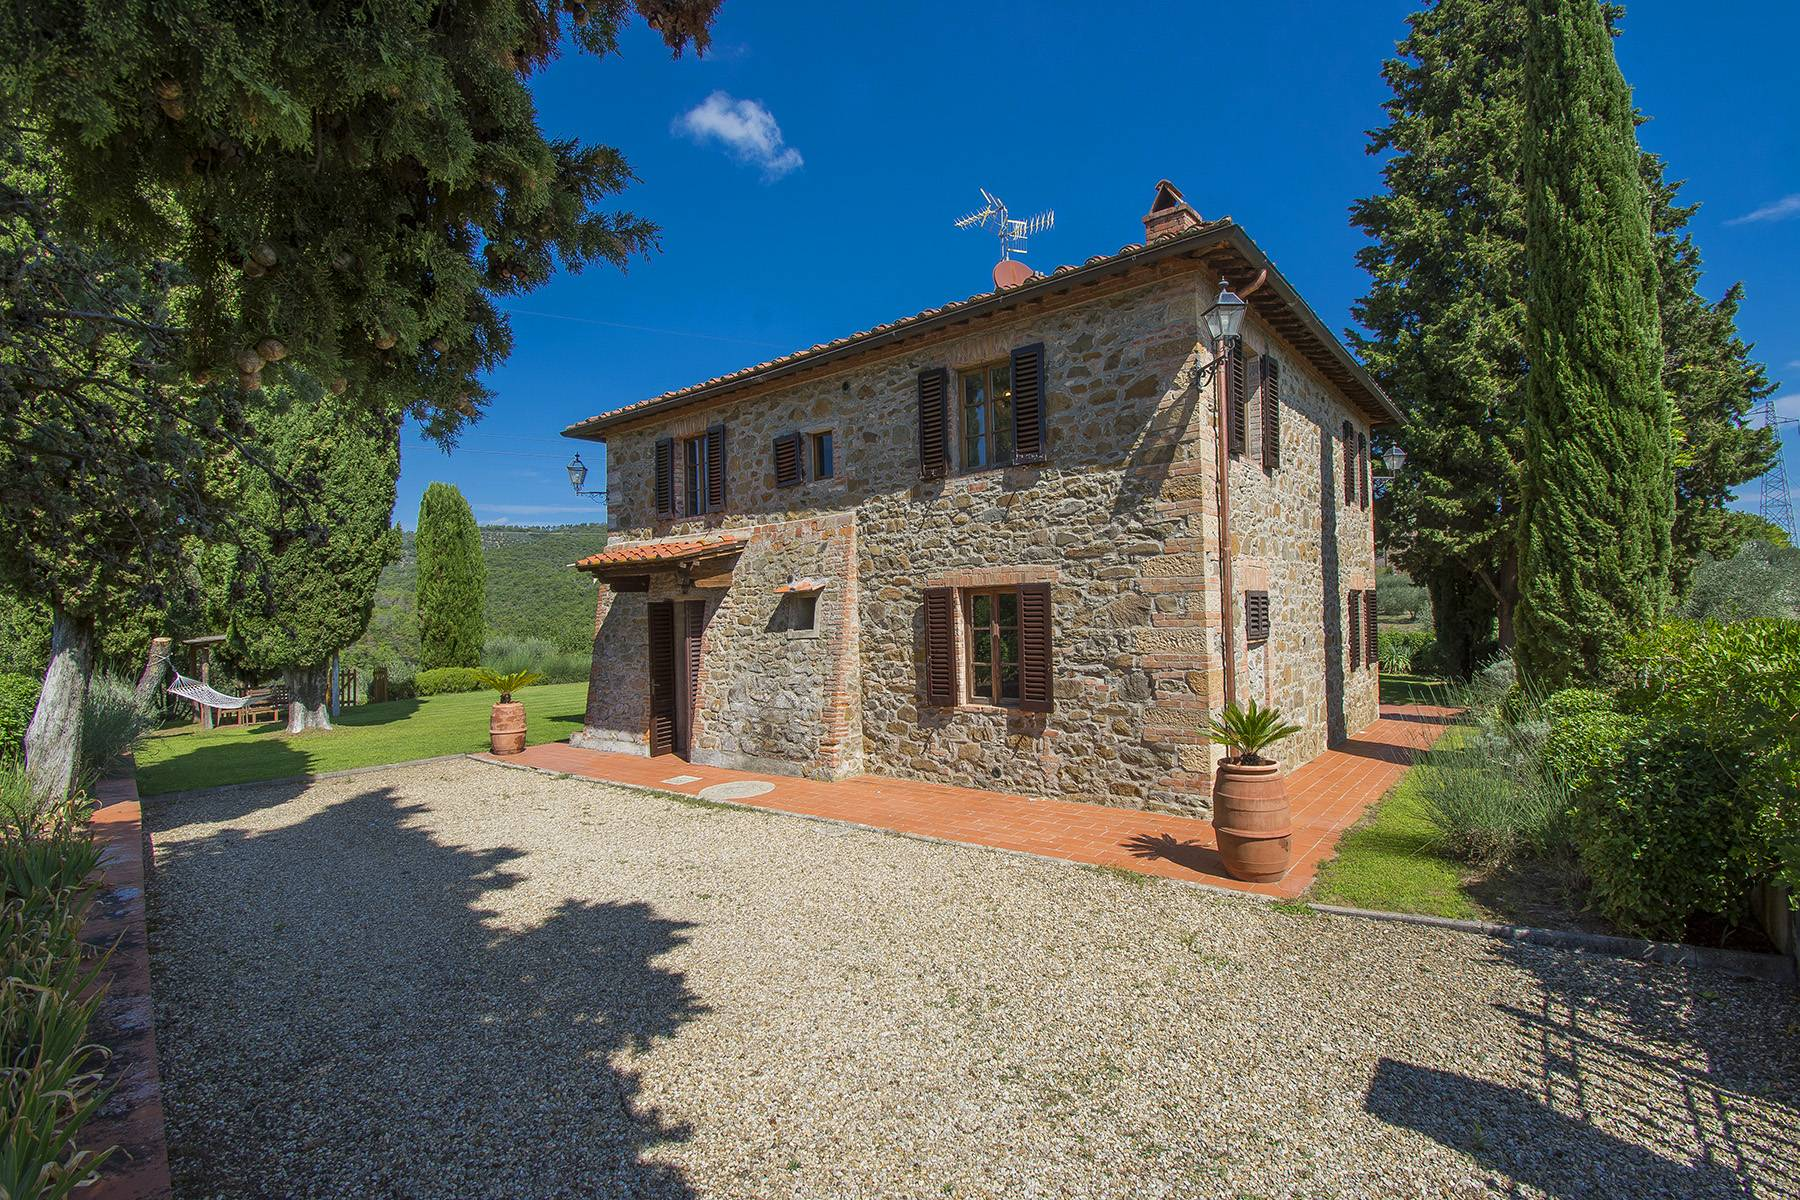 House in the Tuscan Hills for Sale - 17